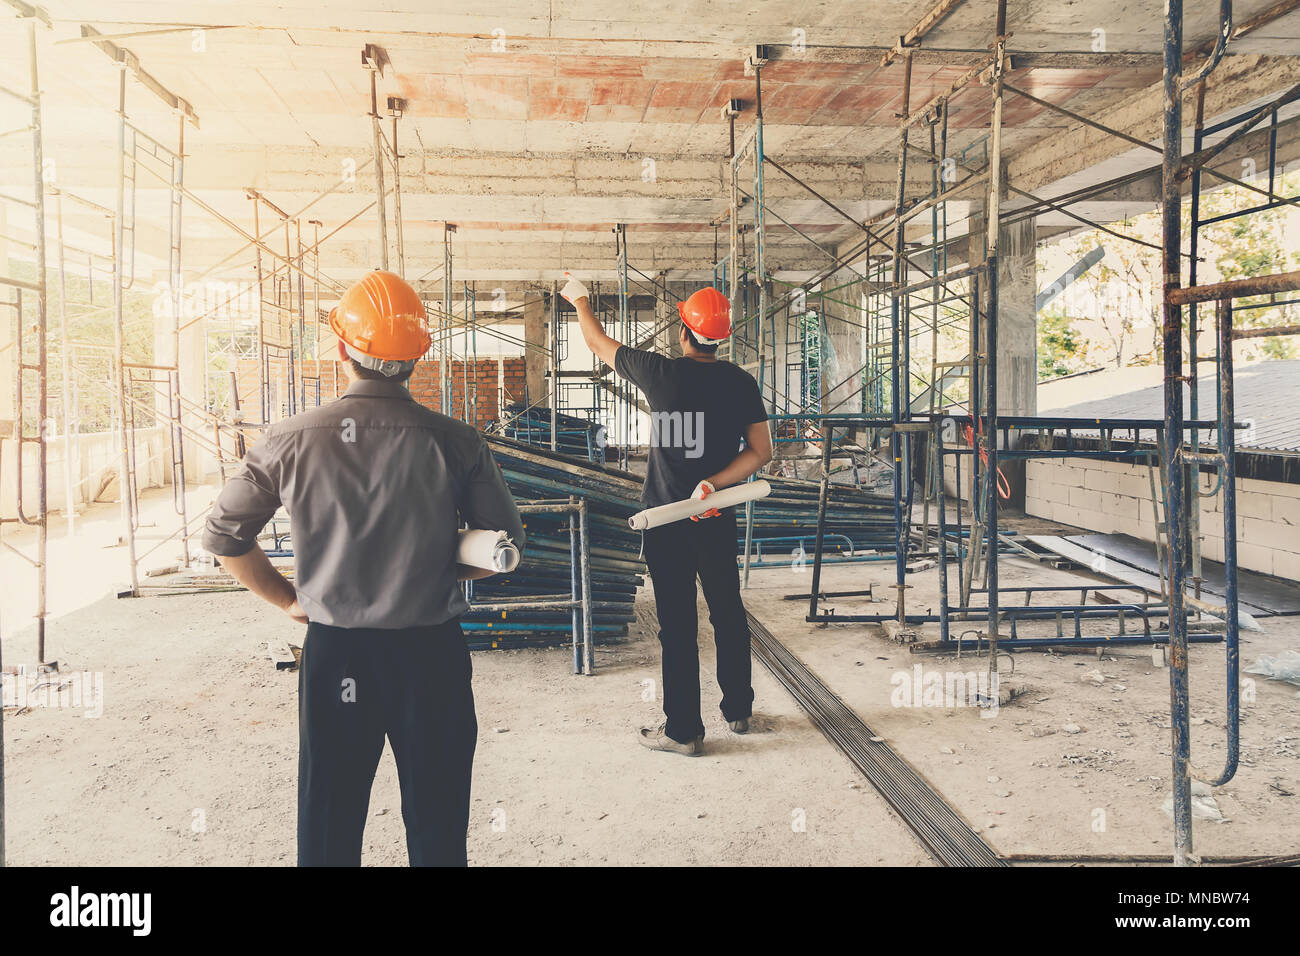 Engineer discussing with foreman about project in building construction site - Stock Image